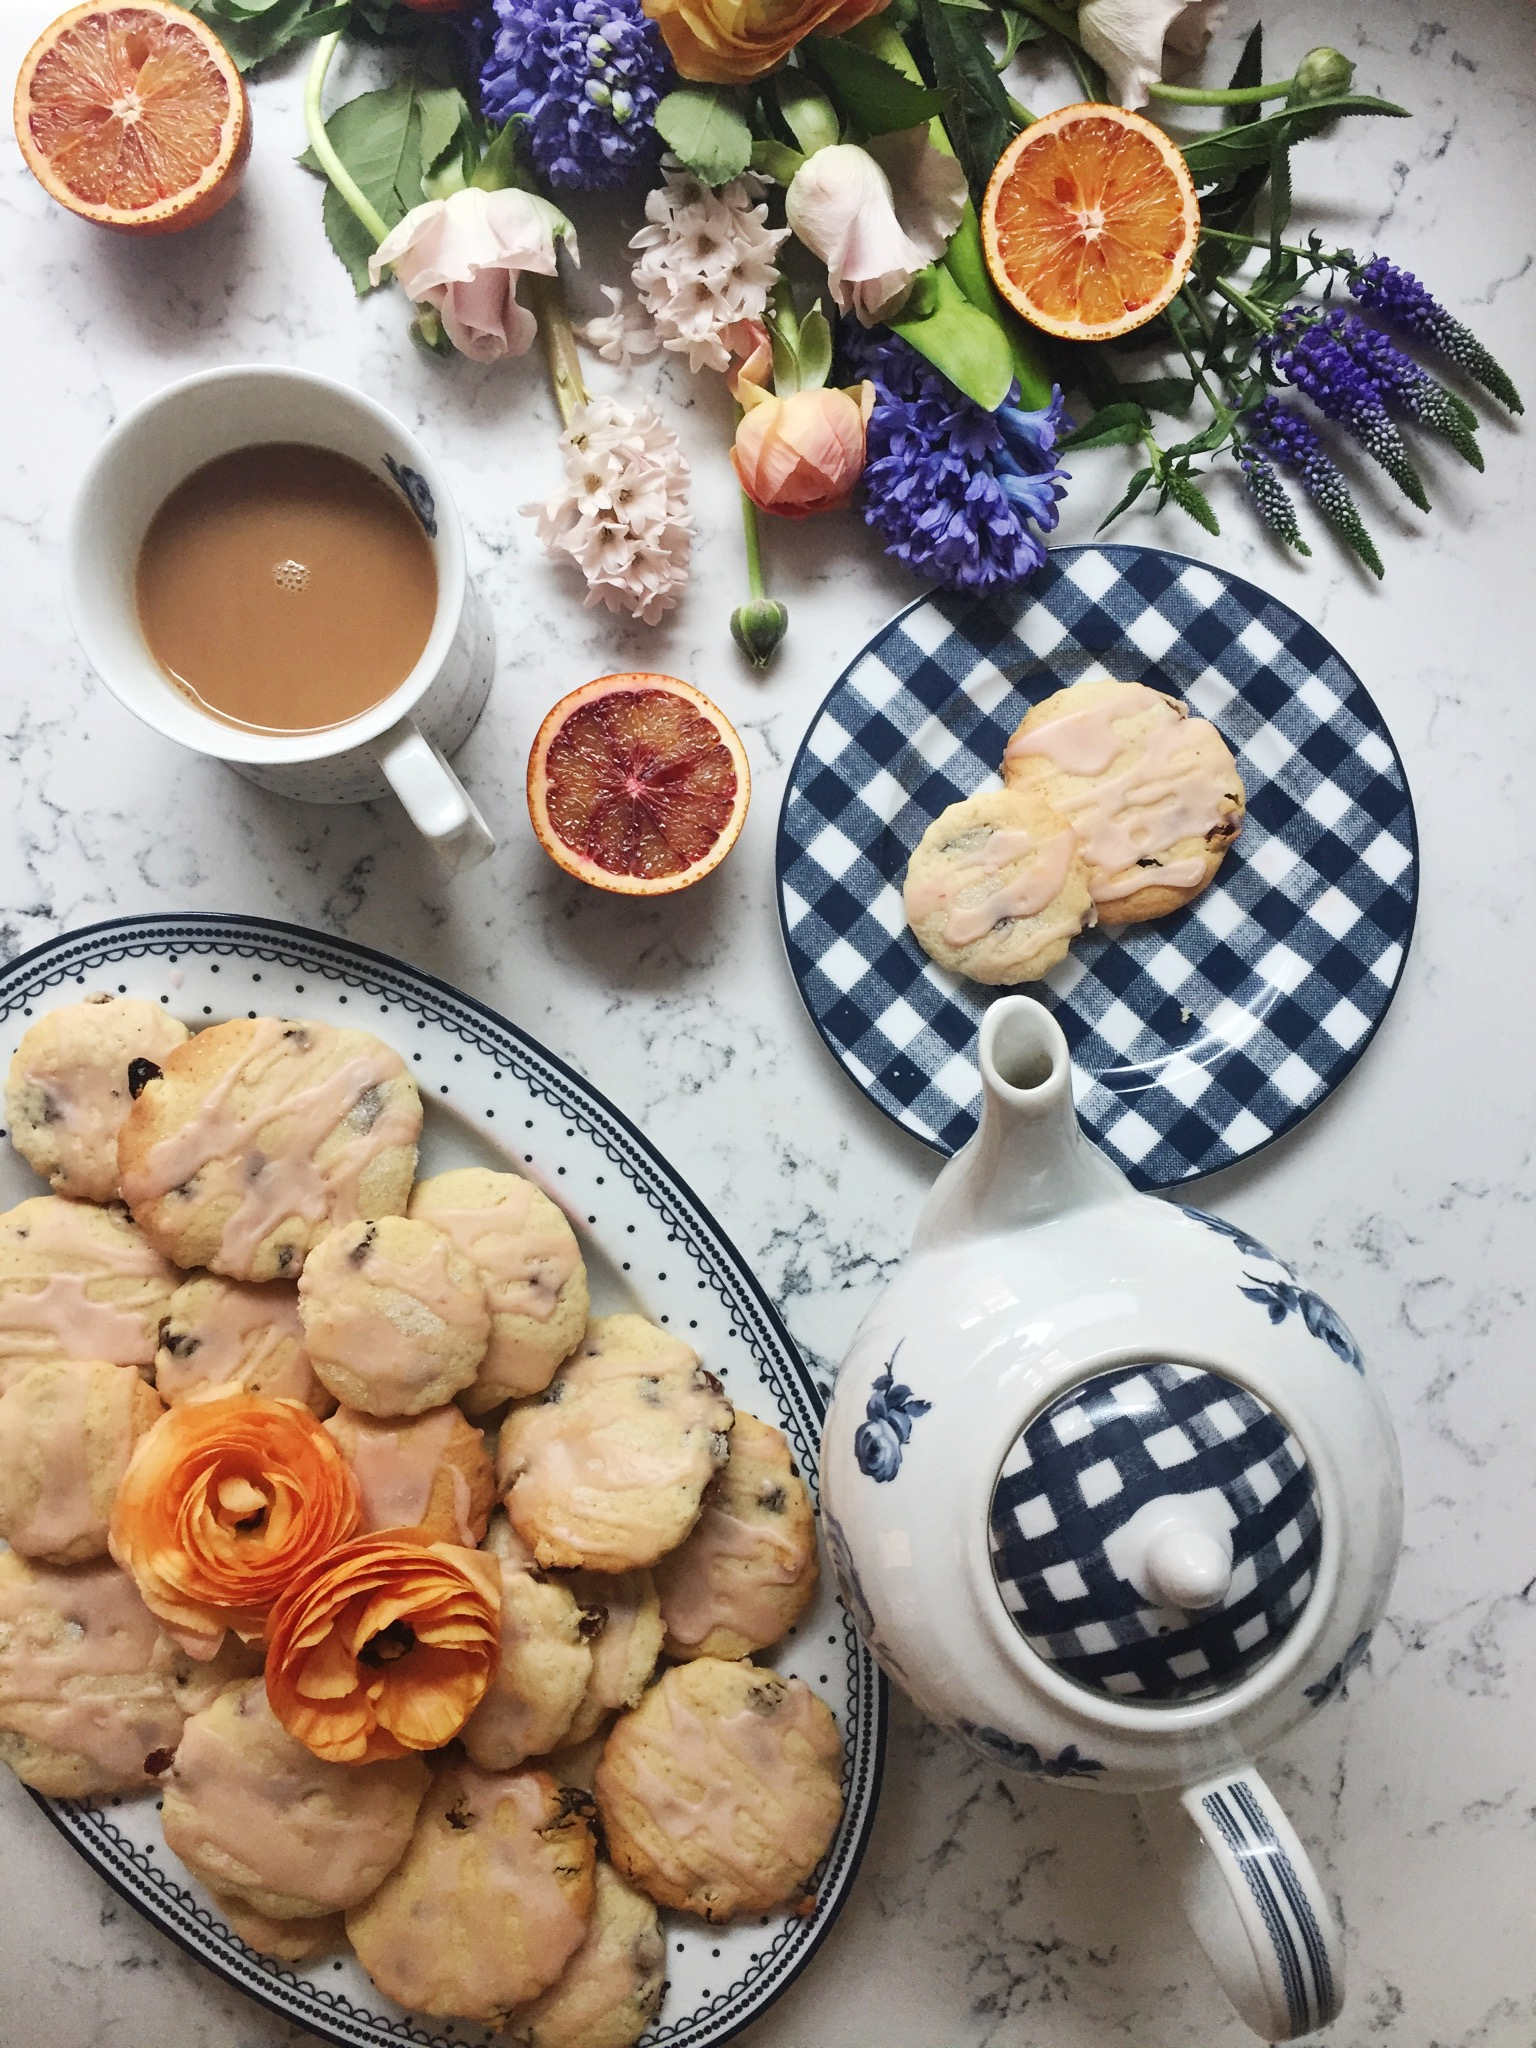 Cardamom Easter biscuits with blood orange icing